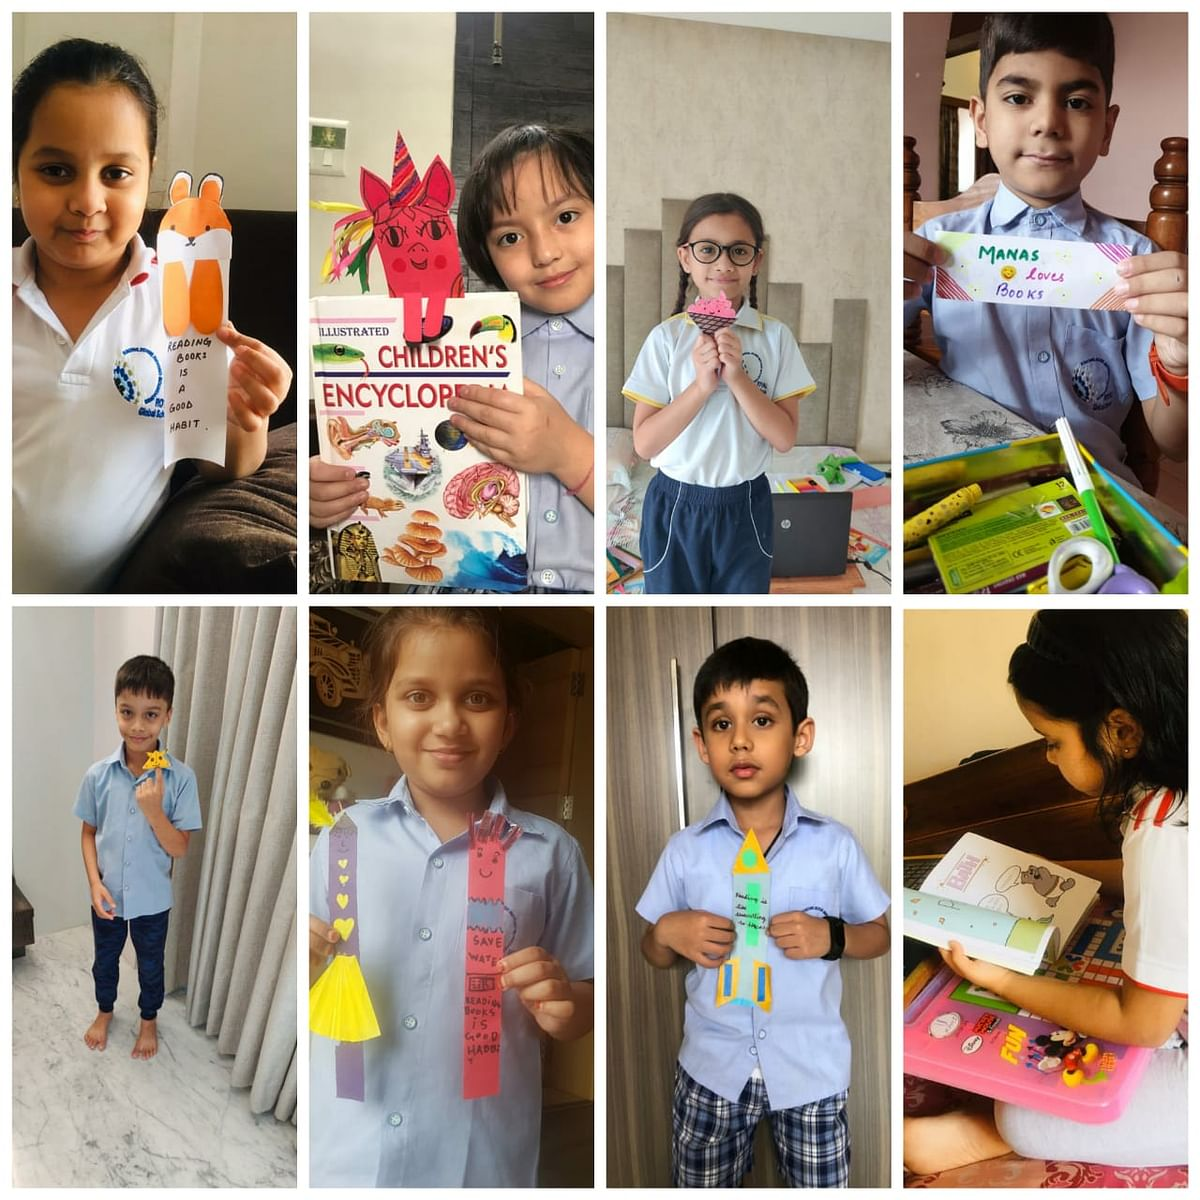 Students celebrating World Book Day